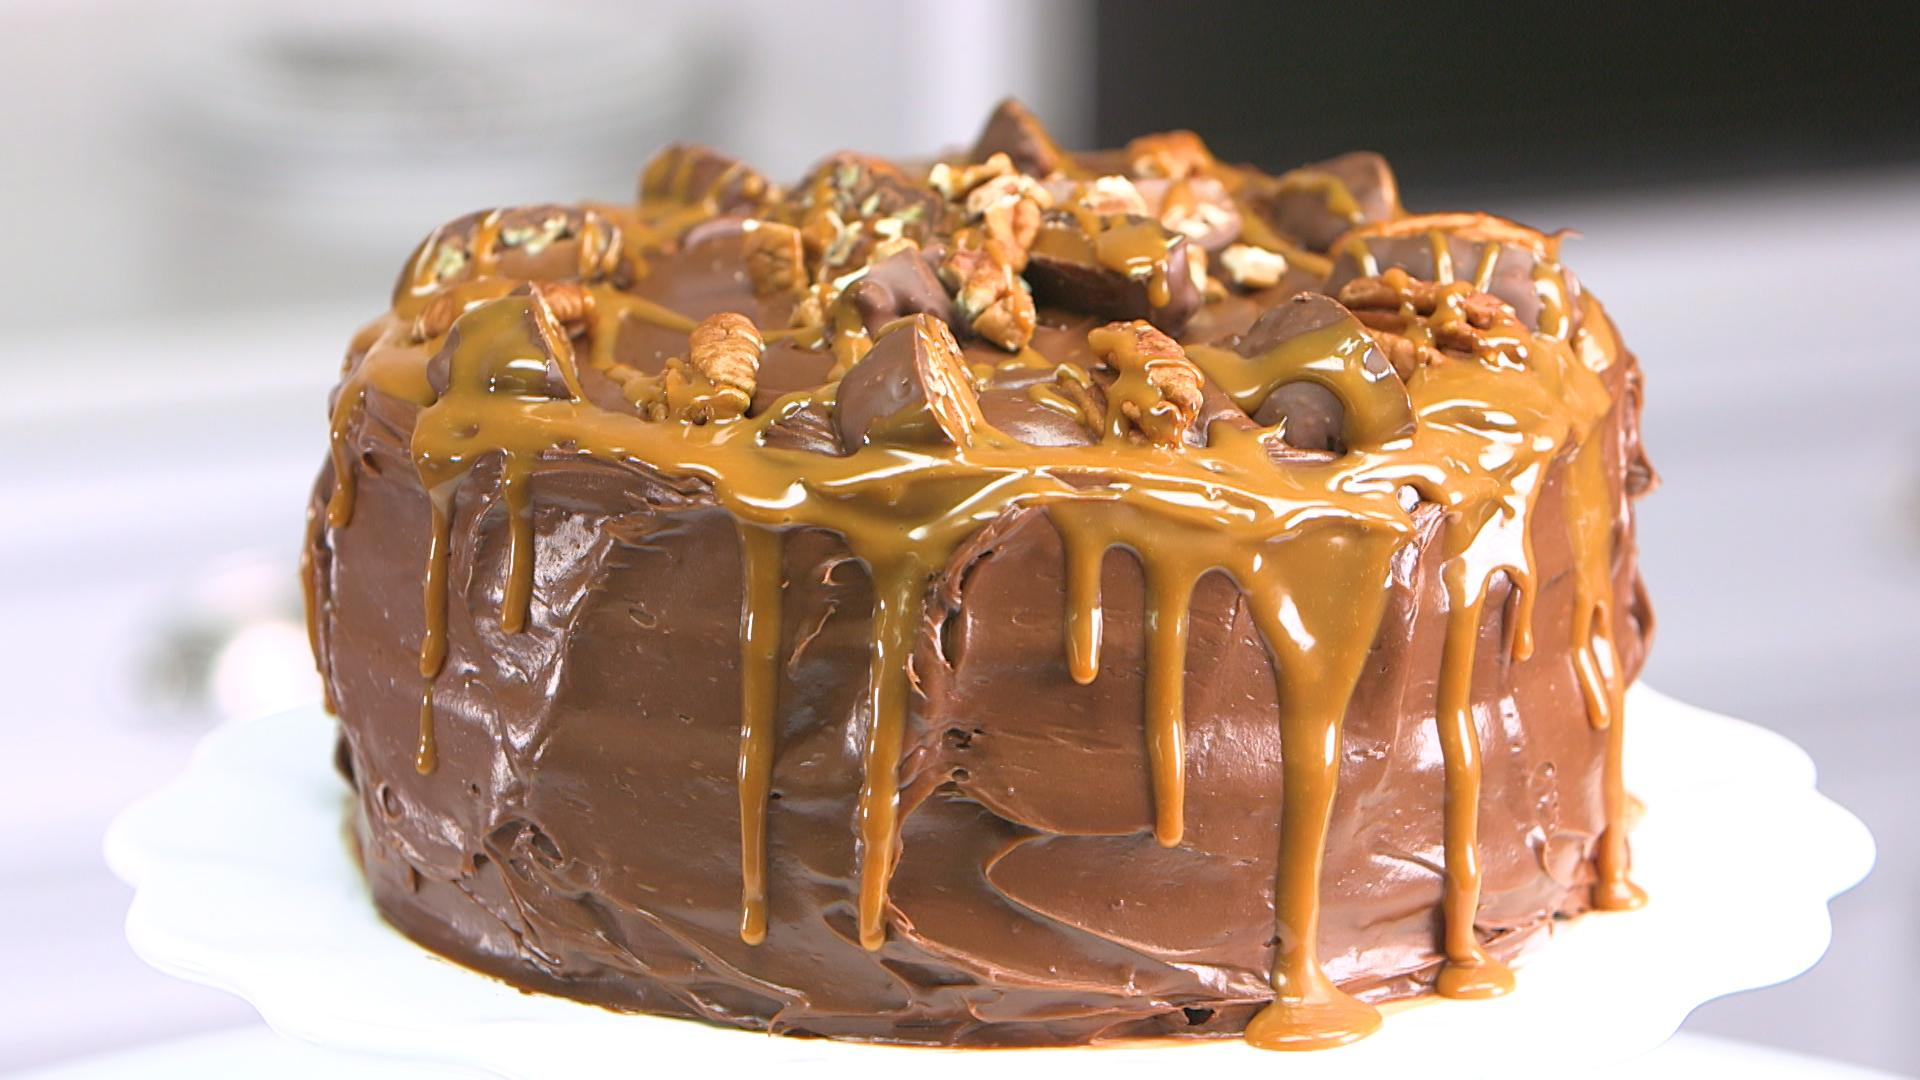 Easy Homemade Chocolate Turtle Cake: How To Make Chocolate Turtle Cake - Video